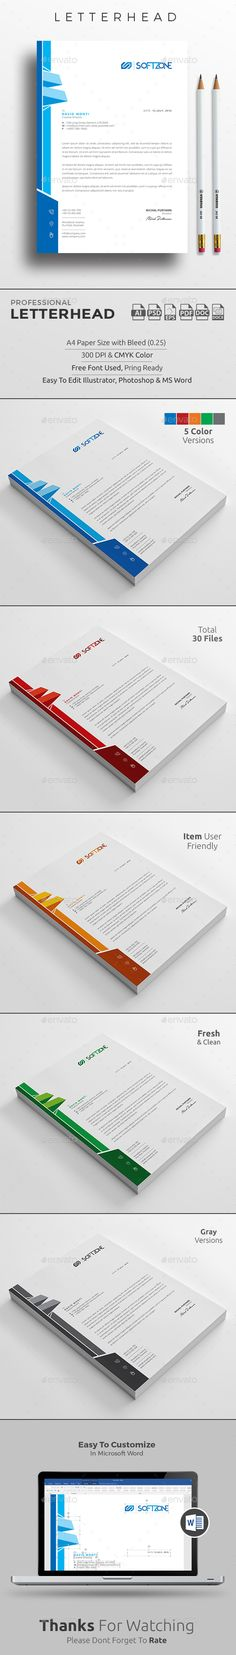 Letterhead Template Download, Editable and Letterhead template - free letterhead templates download